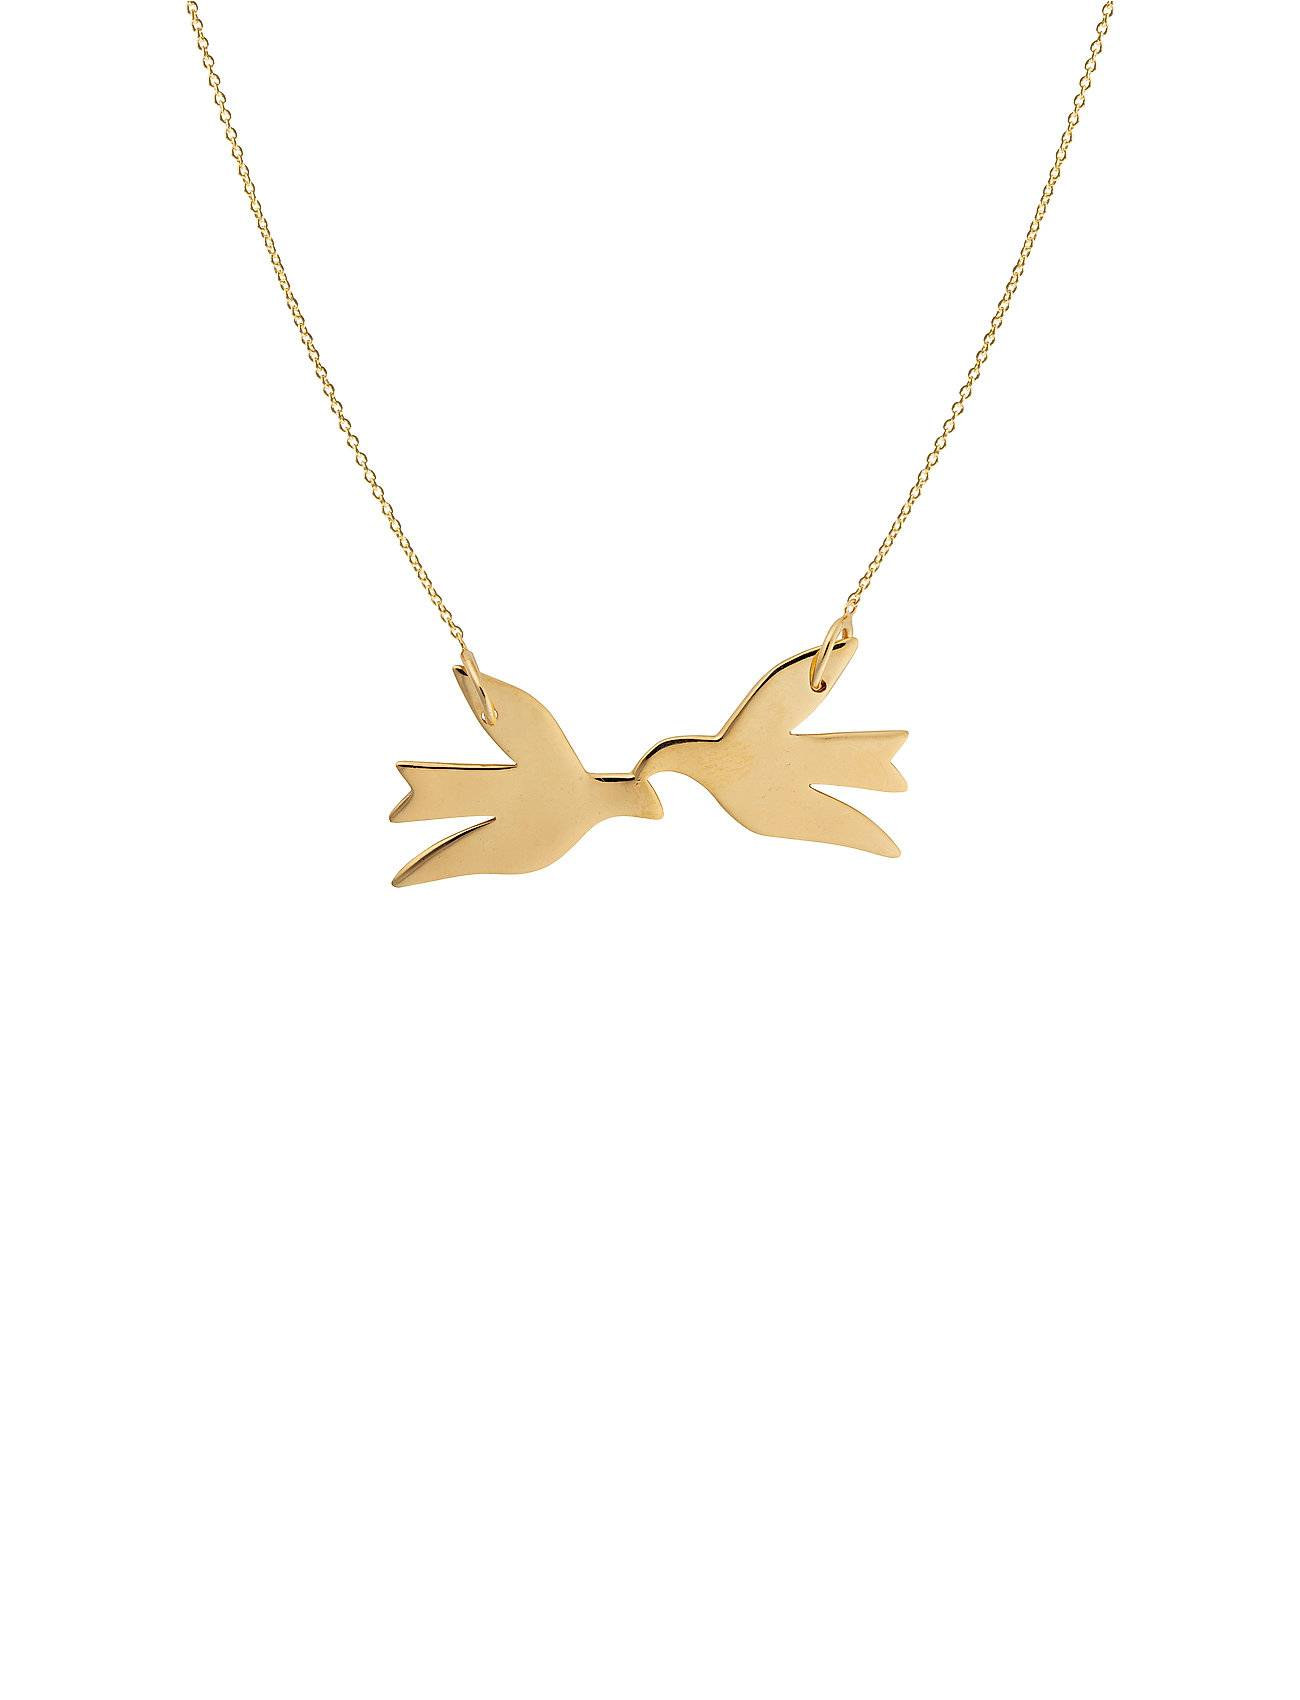 Syster P Birdy Necklace Gold Accessories Jewellery Necklaces Dainty Necklaces Kulta Syster P